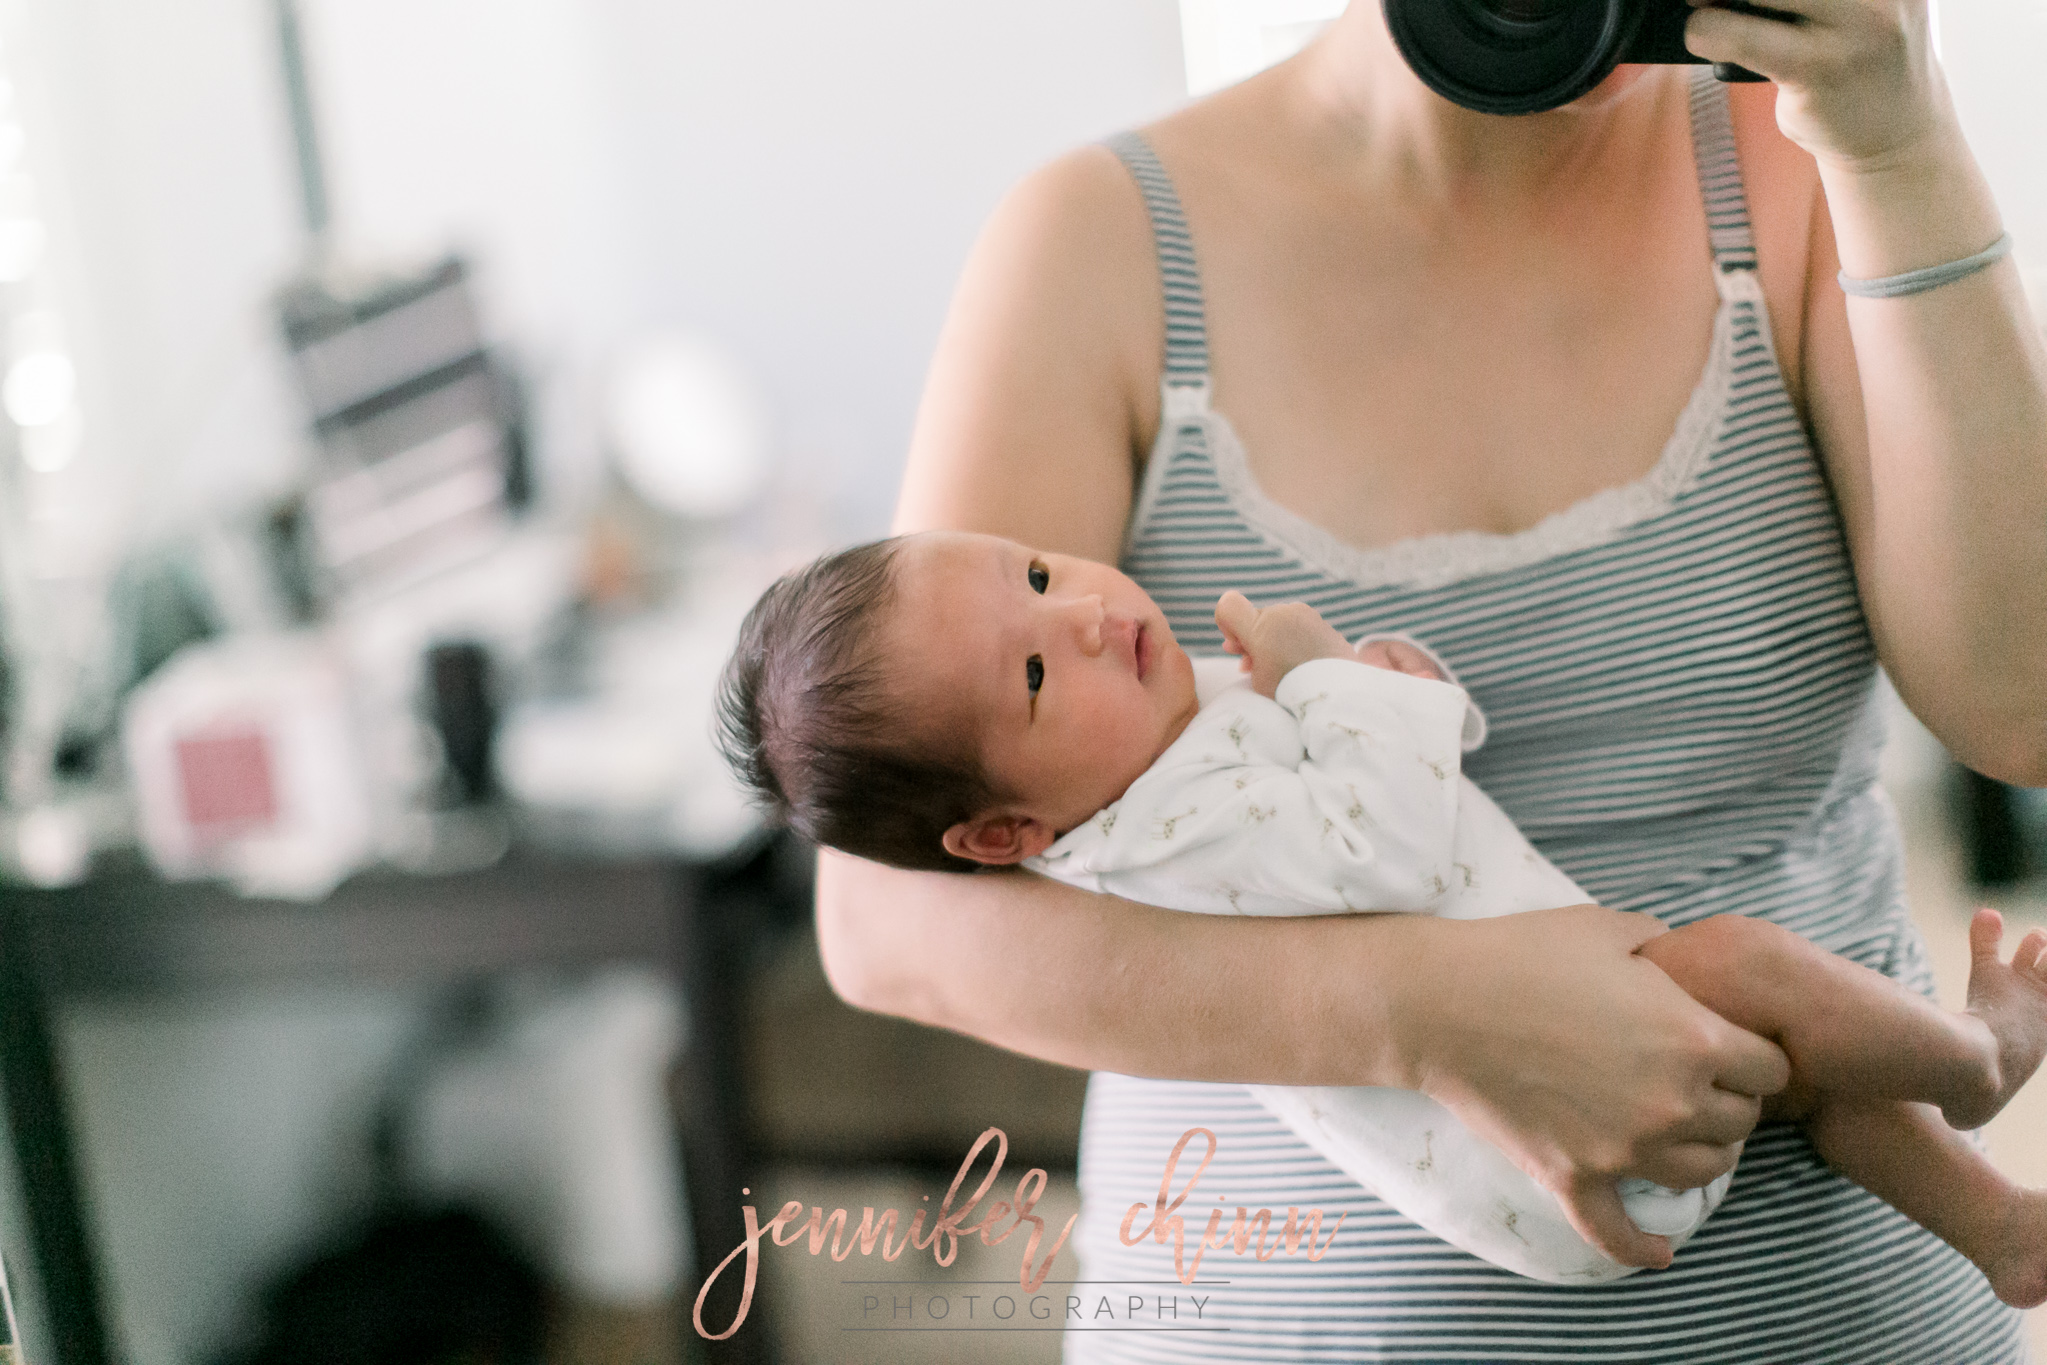 becoming a mommy; jenniferchinnphotography.com